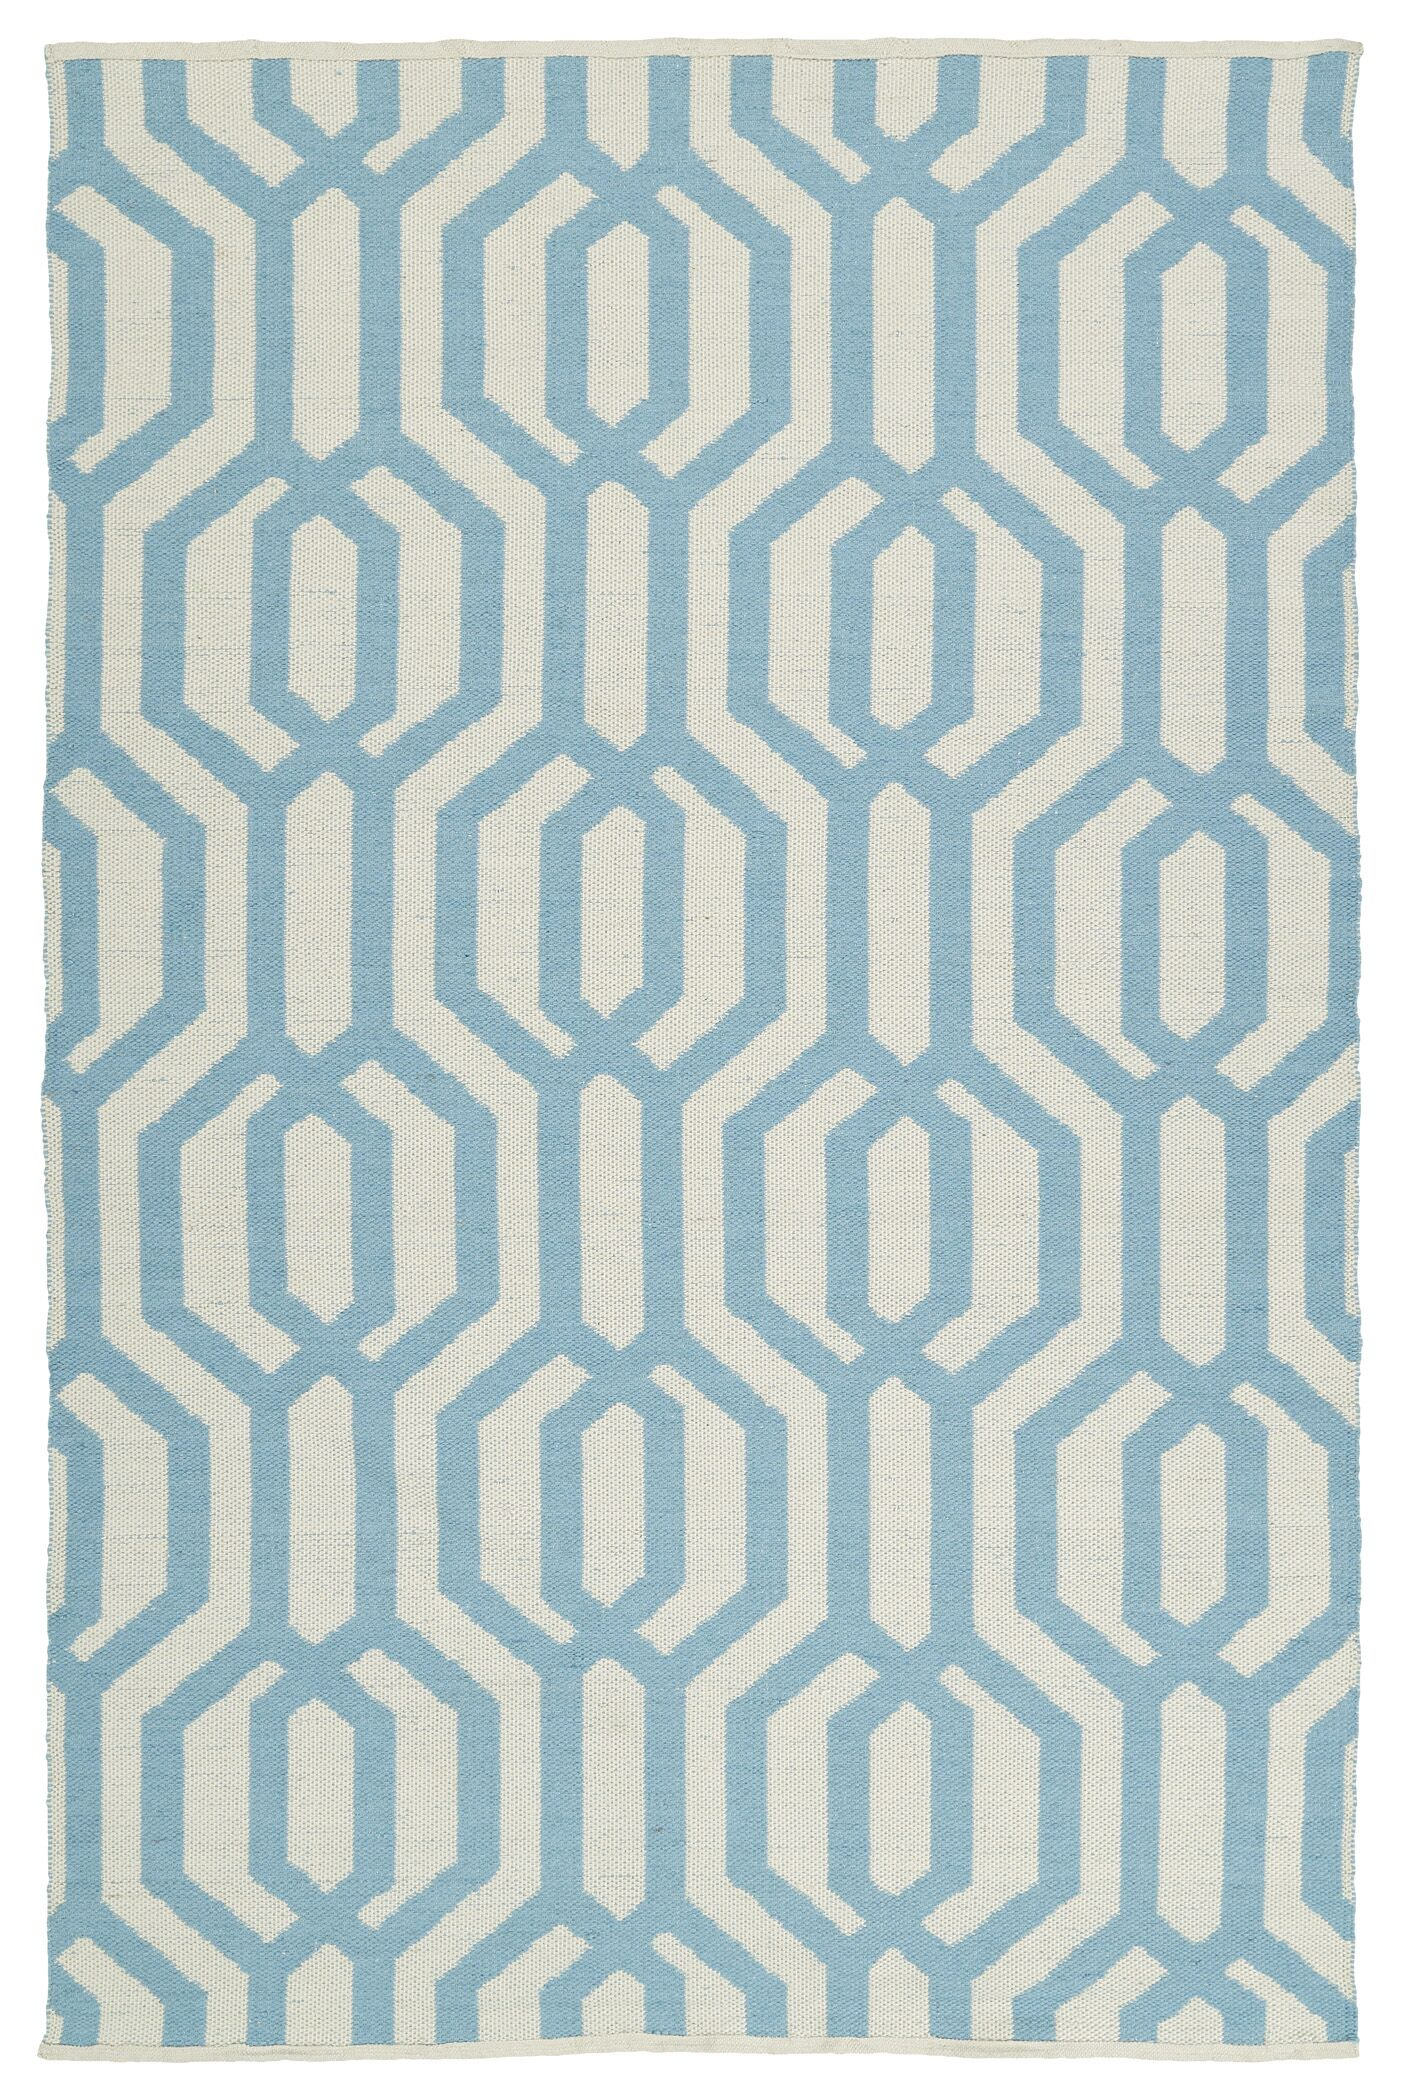 Camillei Cream/Spa Indoor/Outdoor Area Rug Rug Size: Rectangle 3' x 5'